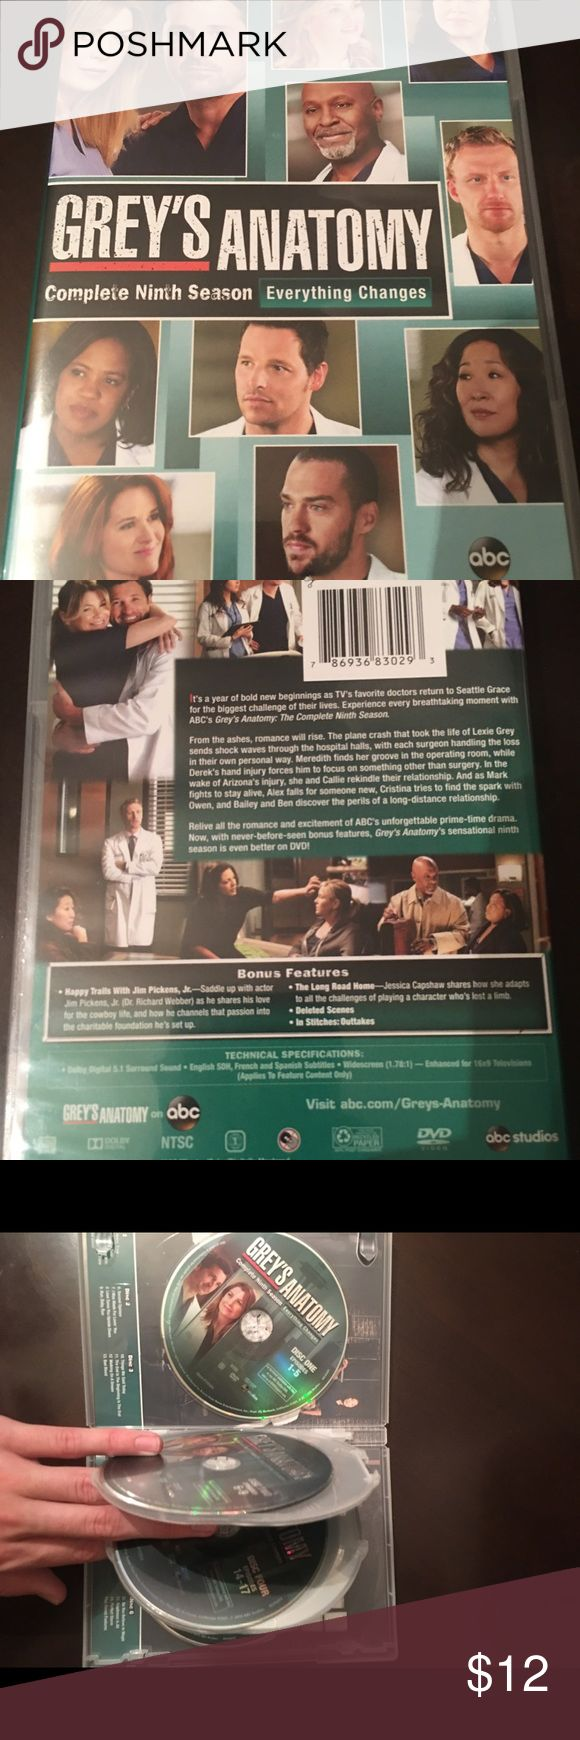 Grey's Anatomy Season 9 24 episodes of Grey's Anatomy included in this collection of 6 disc Season 9. Never watched so in perfect condition. Grey's Anatomy Other